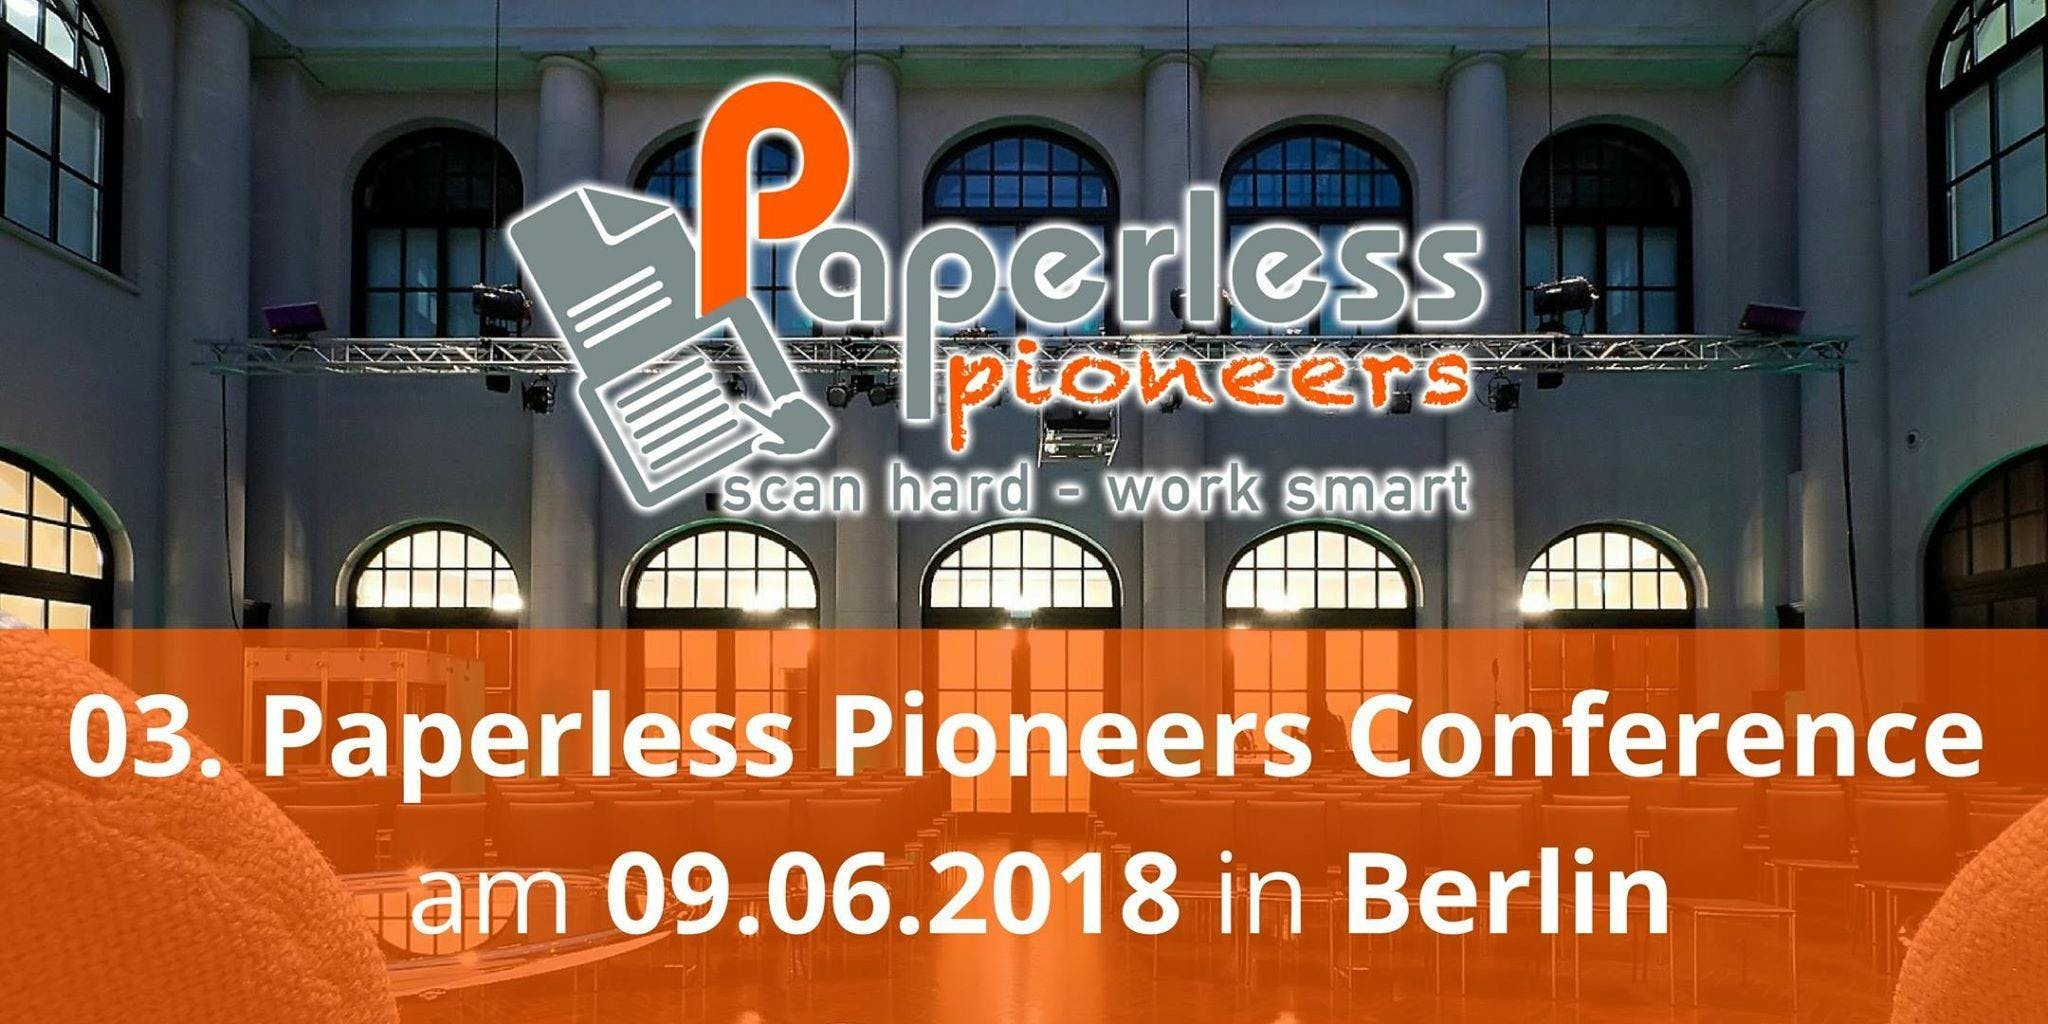 03.Paperless Pioneers Conference | PPC03